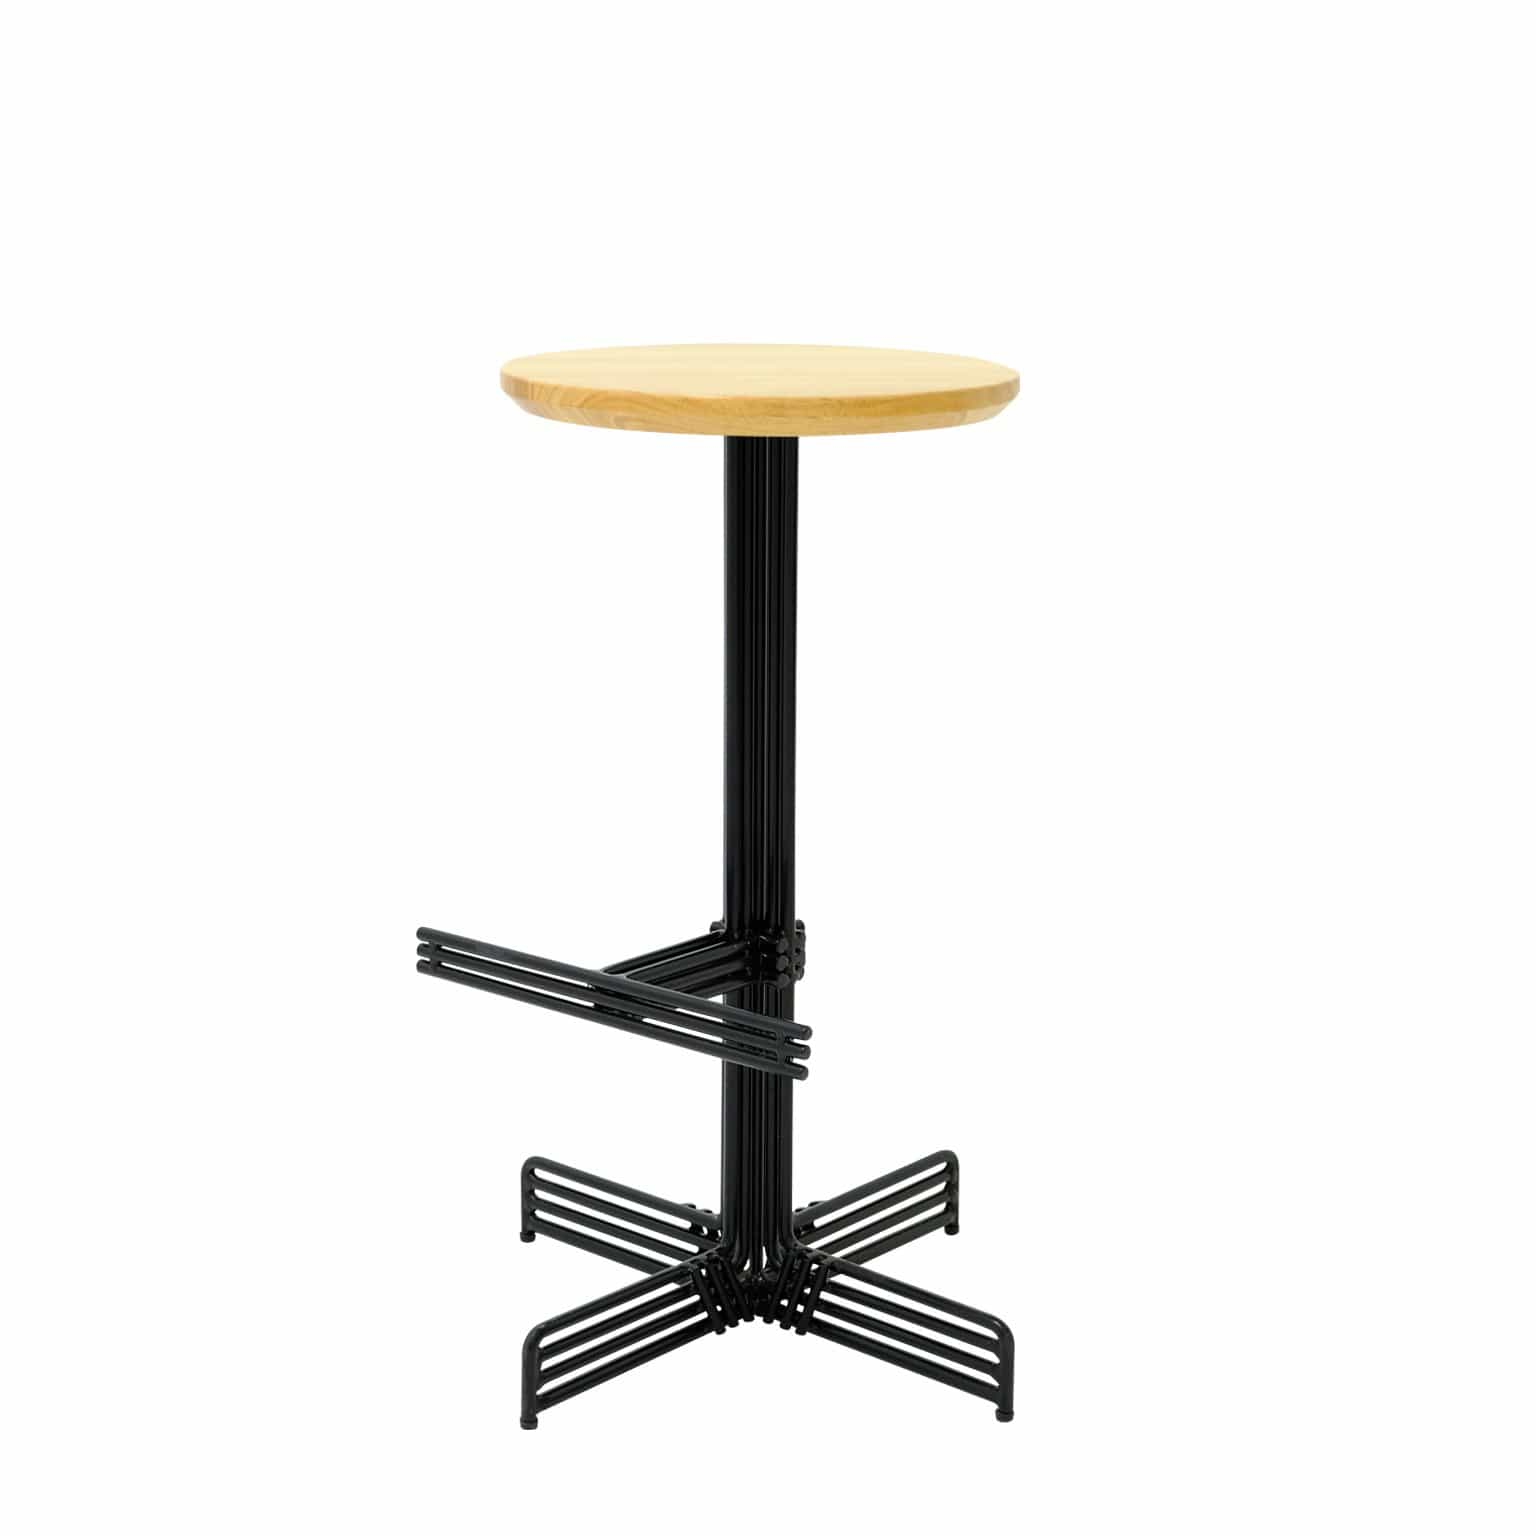 Bend Goods Furniture Black Stick Counter Stool